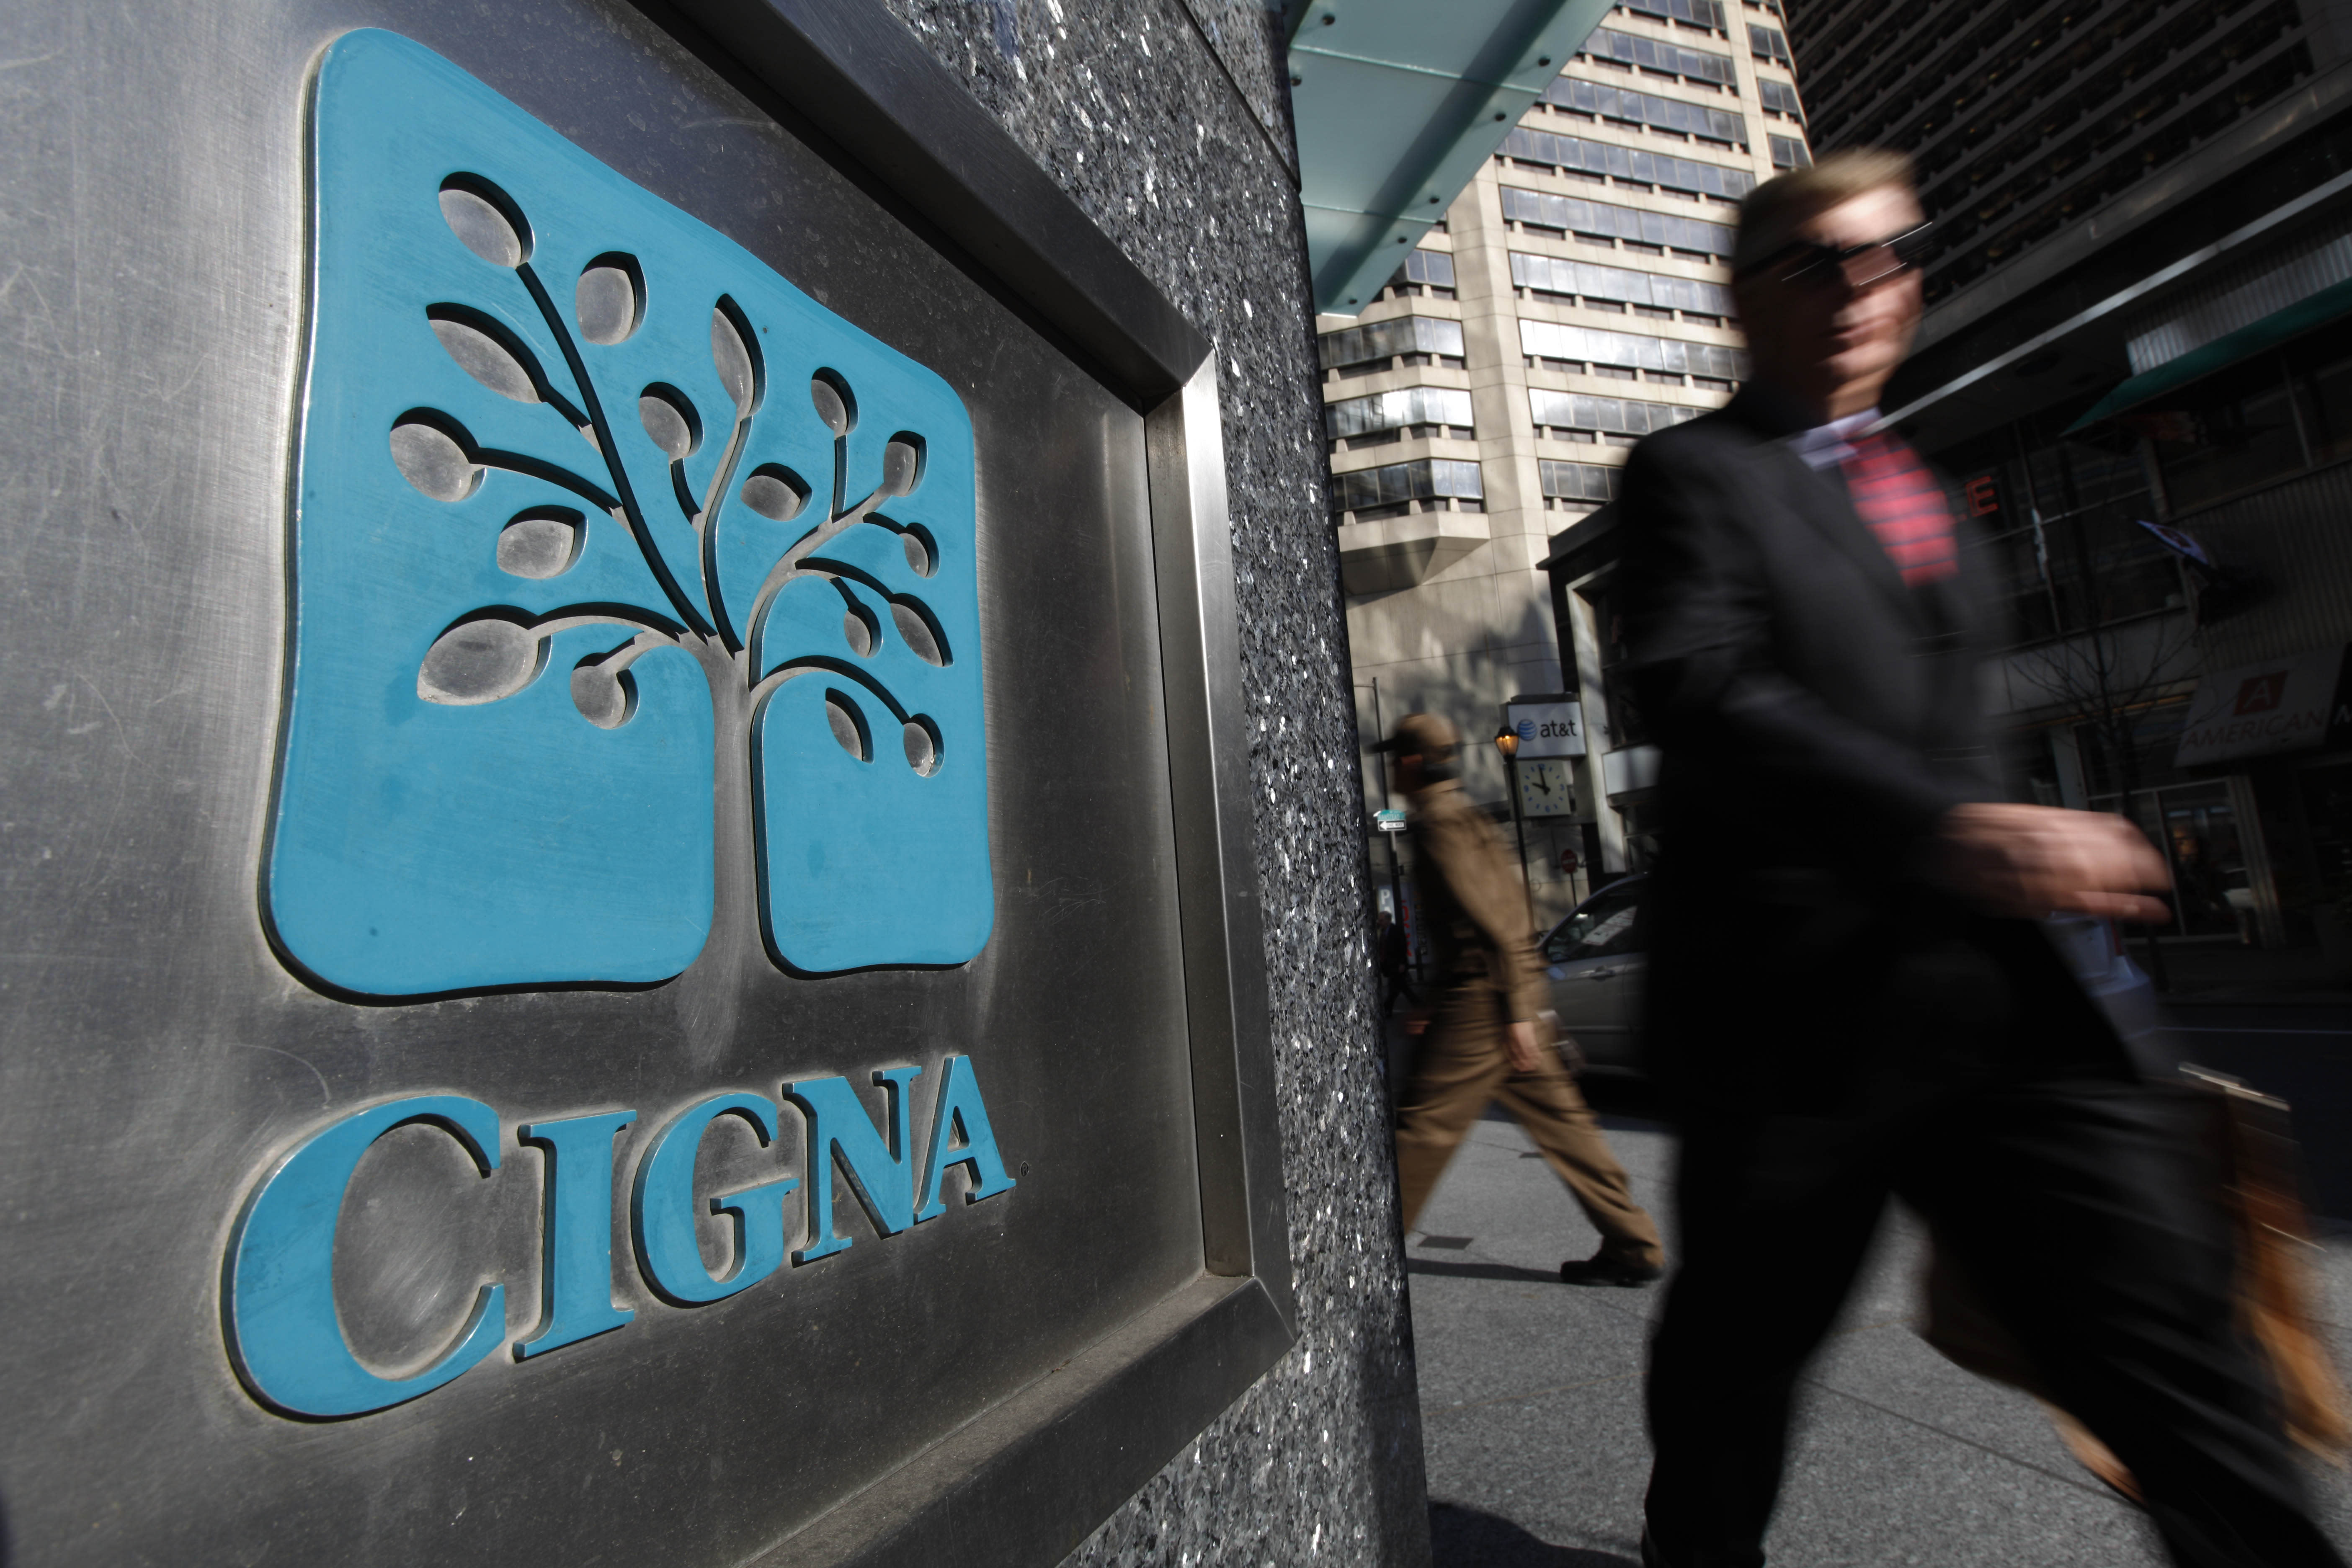 Cigna, Humana become newest major insurers to cover COVID-19 treatment costs